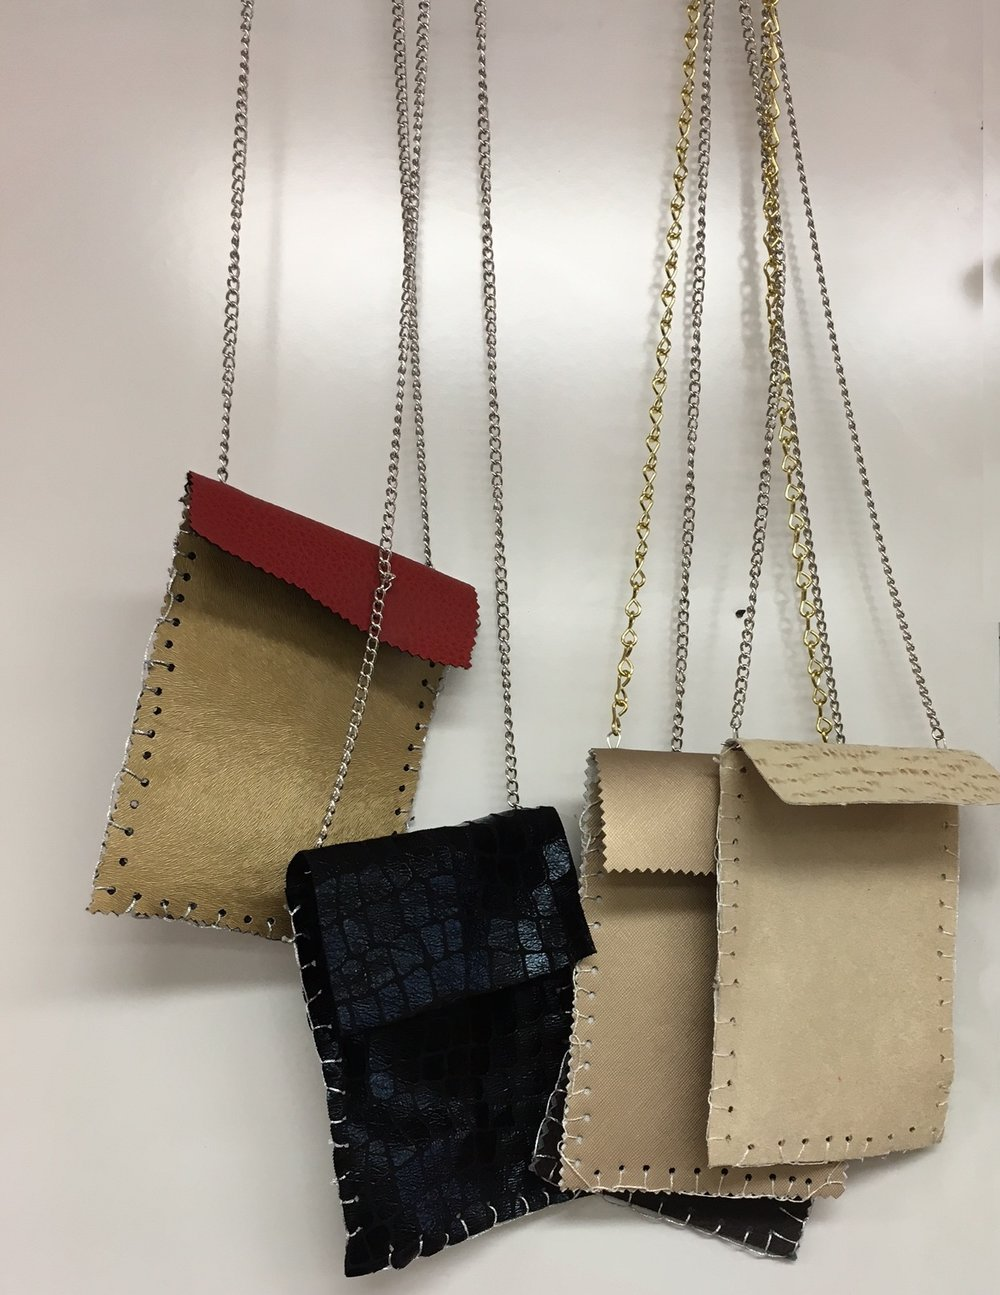 Upcycled Purses made using FabMo fabrics